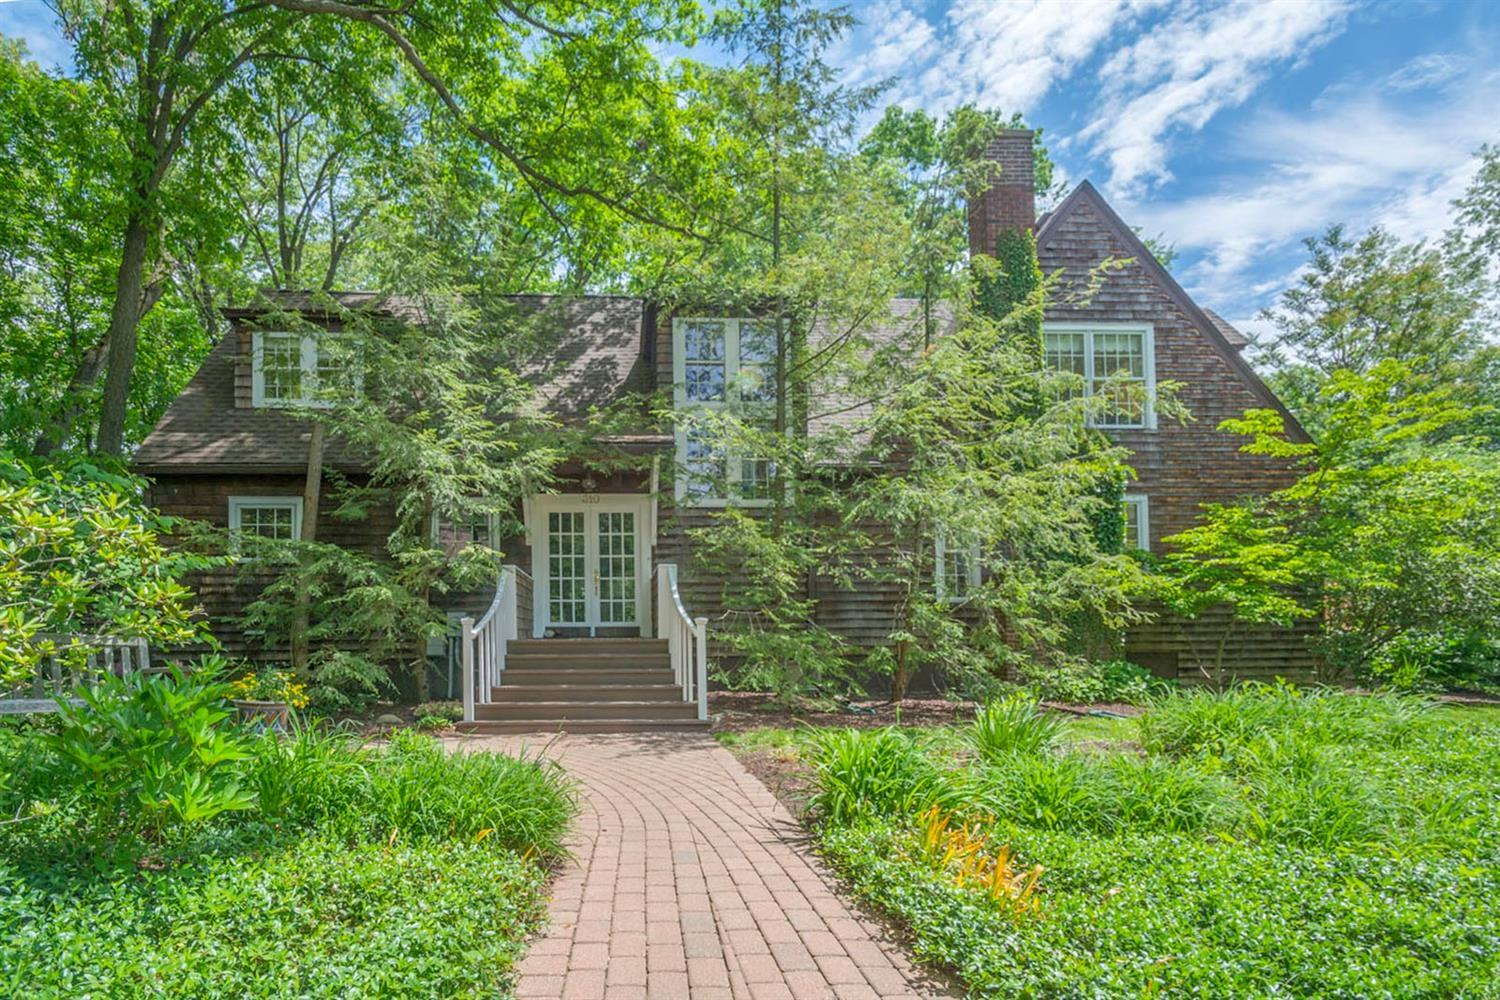 5 Bed 3 Full 1 Partial Baths Home In Ann Arbor For 1 250 000